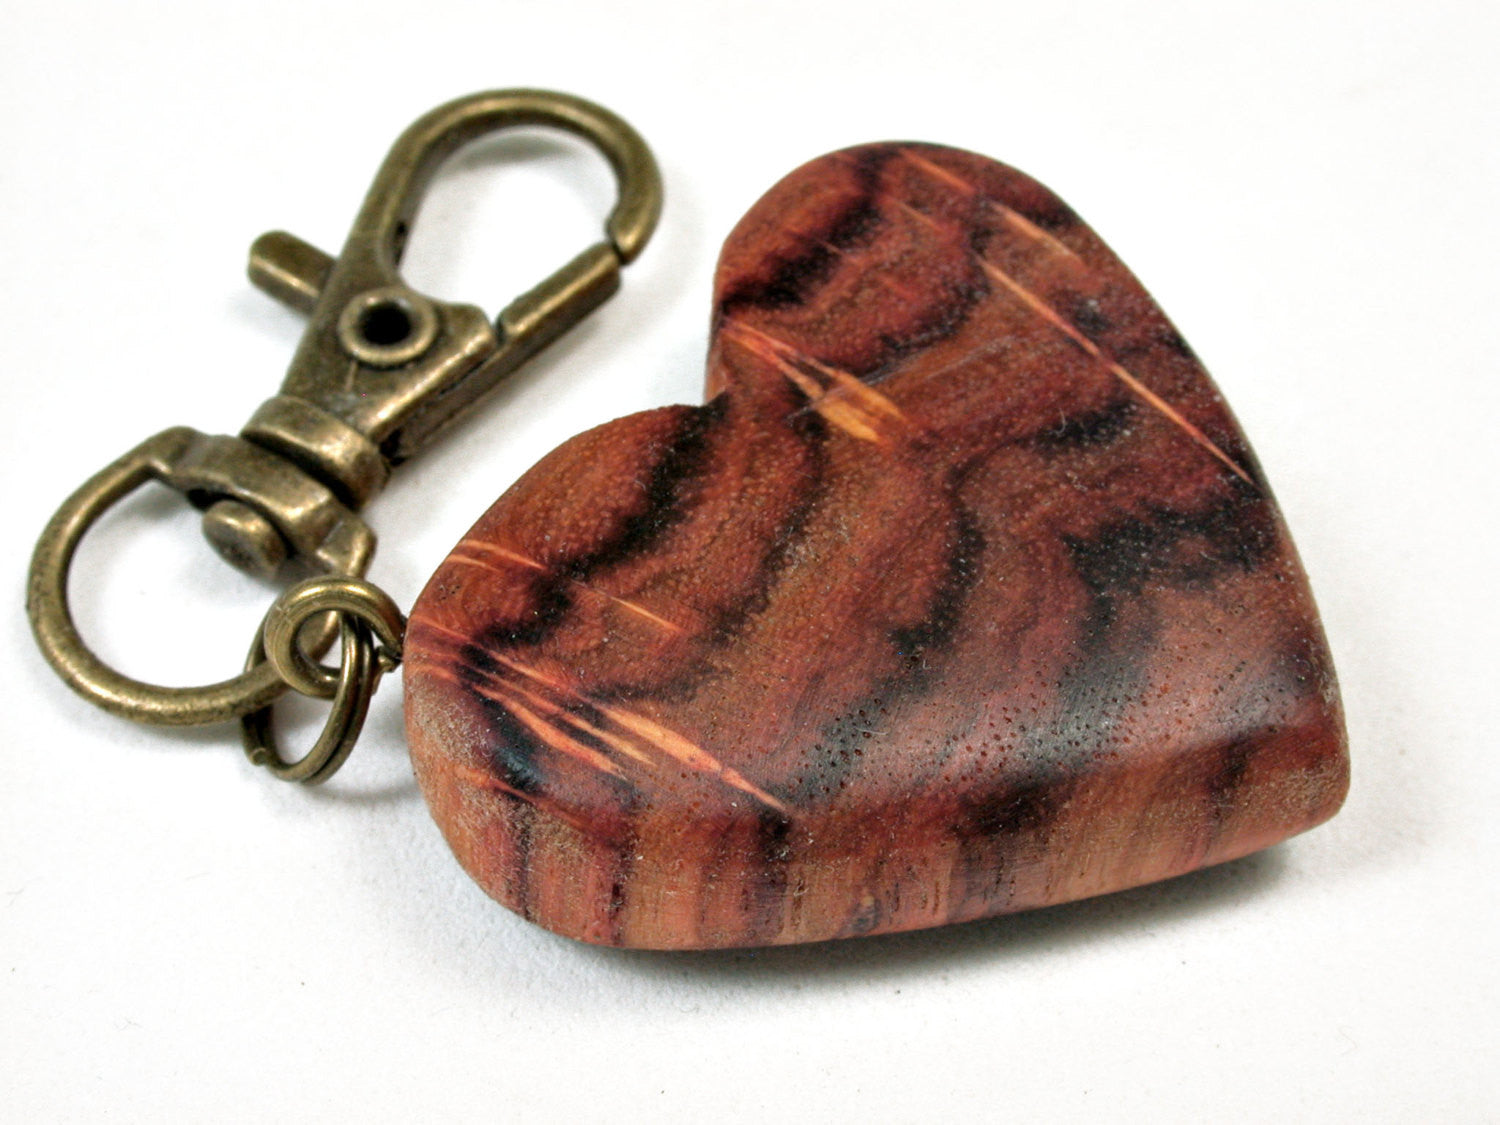 LV-2060 Tulipwood Wooden Heart Charm, Keychain, Wedding Favor-HAND CARVED